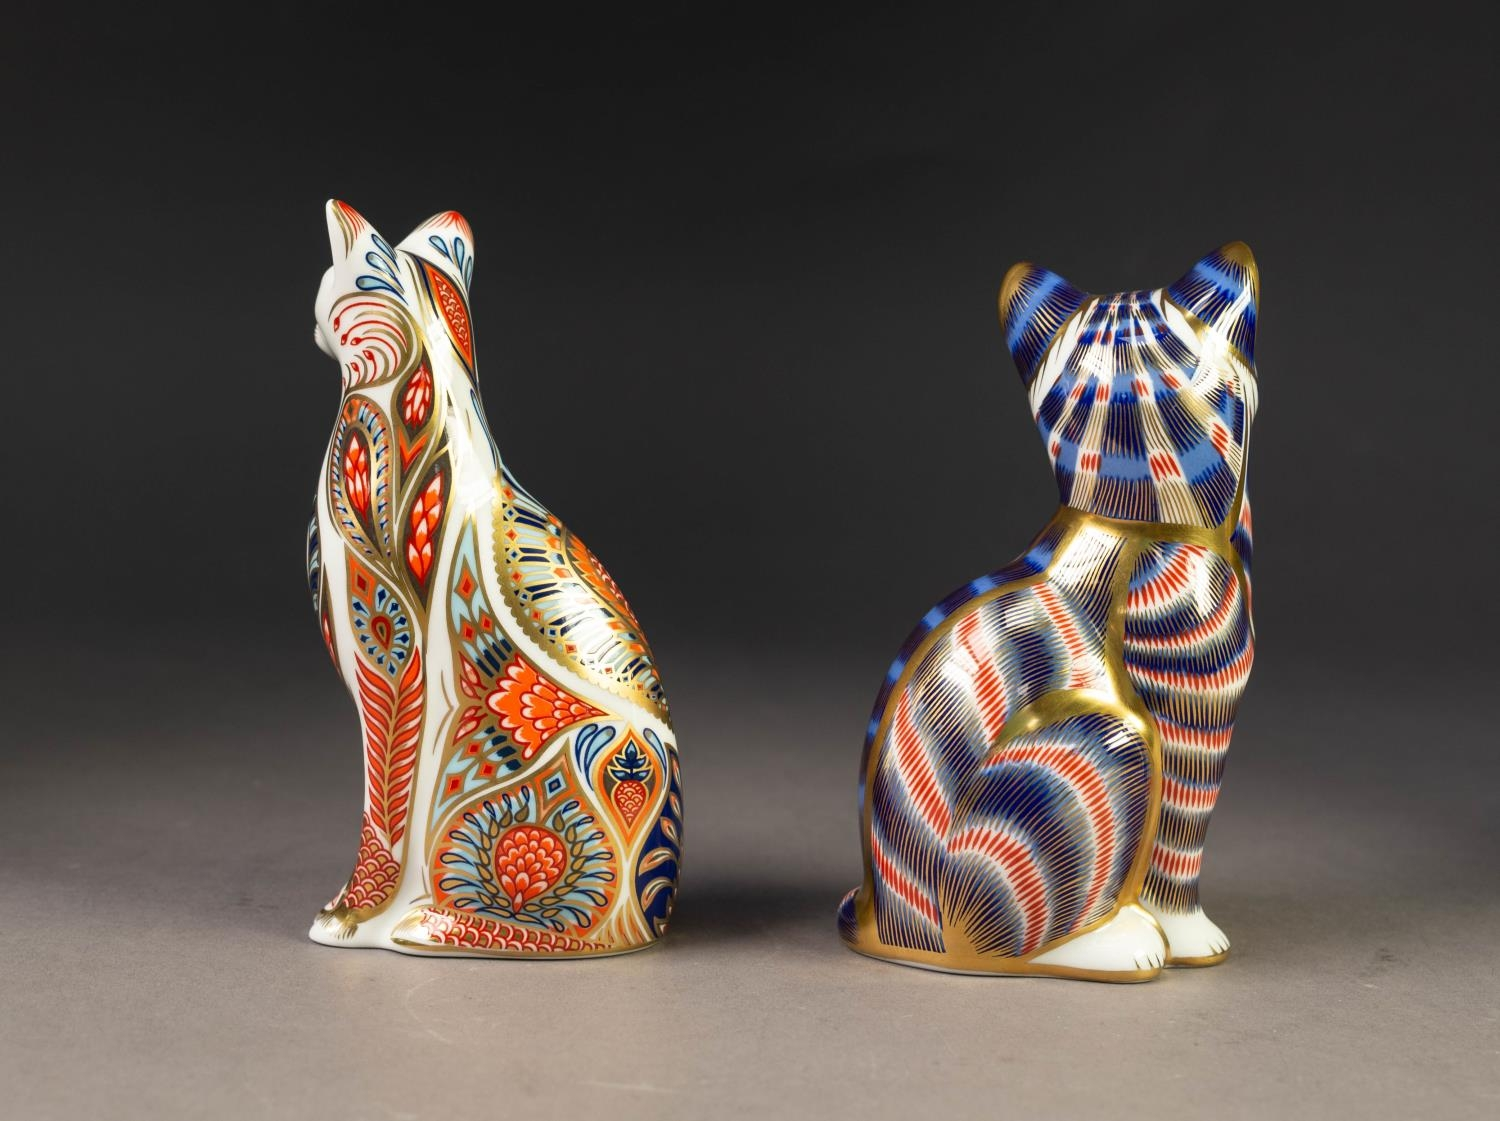 TWO MODERN ROYAL CROWN DERBY IMARI CHINA PAPERWEIGHTS OF CATS, both with gilt stoppers, printed - Image 2 of 3